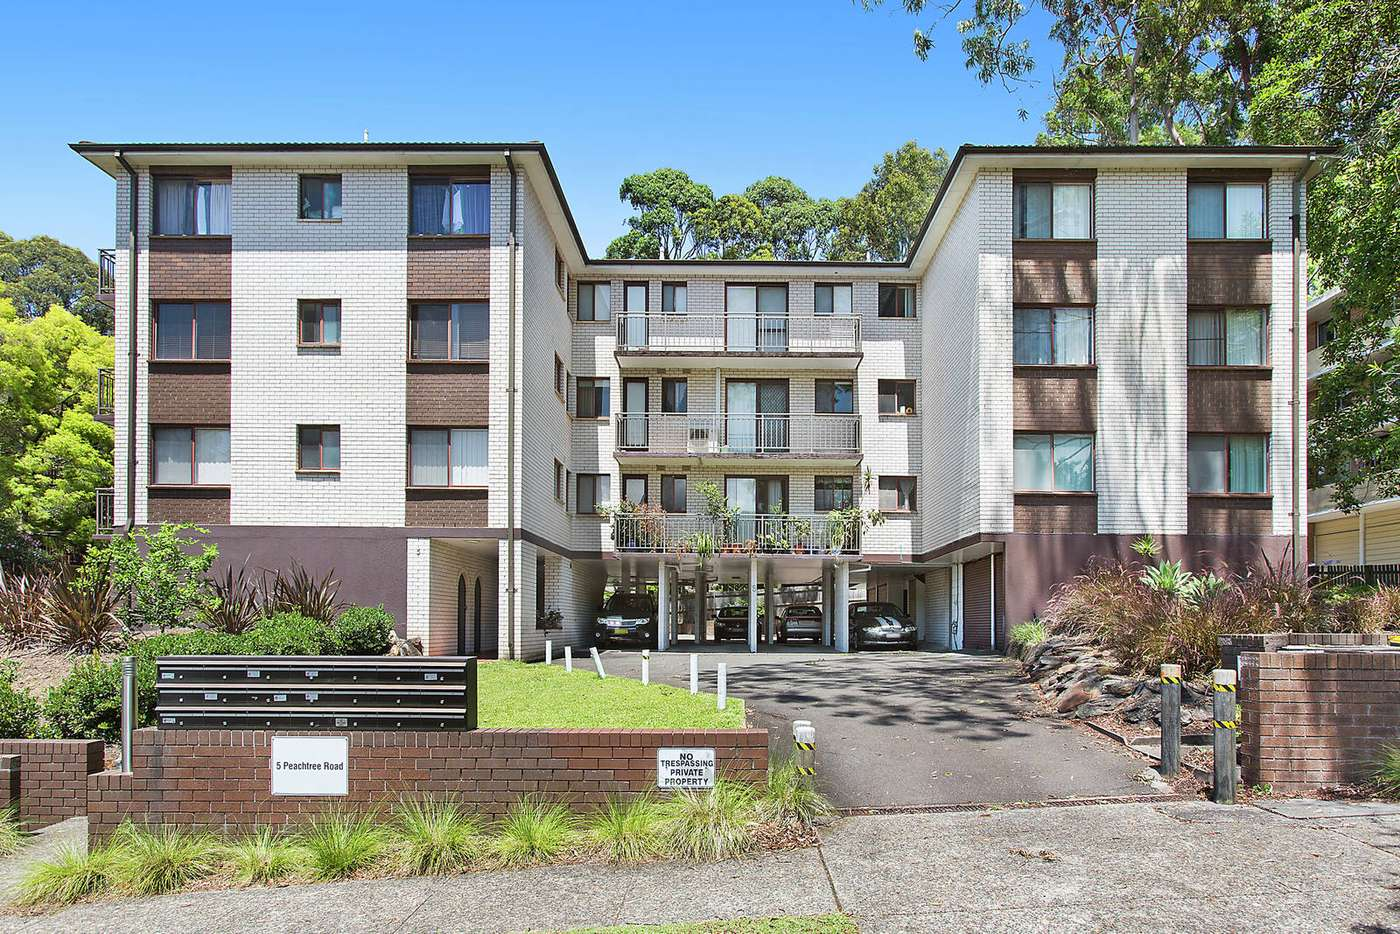 Main view of Homely apartment listing, 8/5 Peach Tree Road, Macquarie Park, NSW 2113